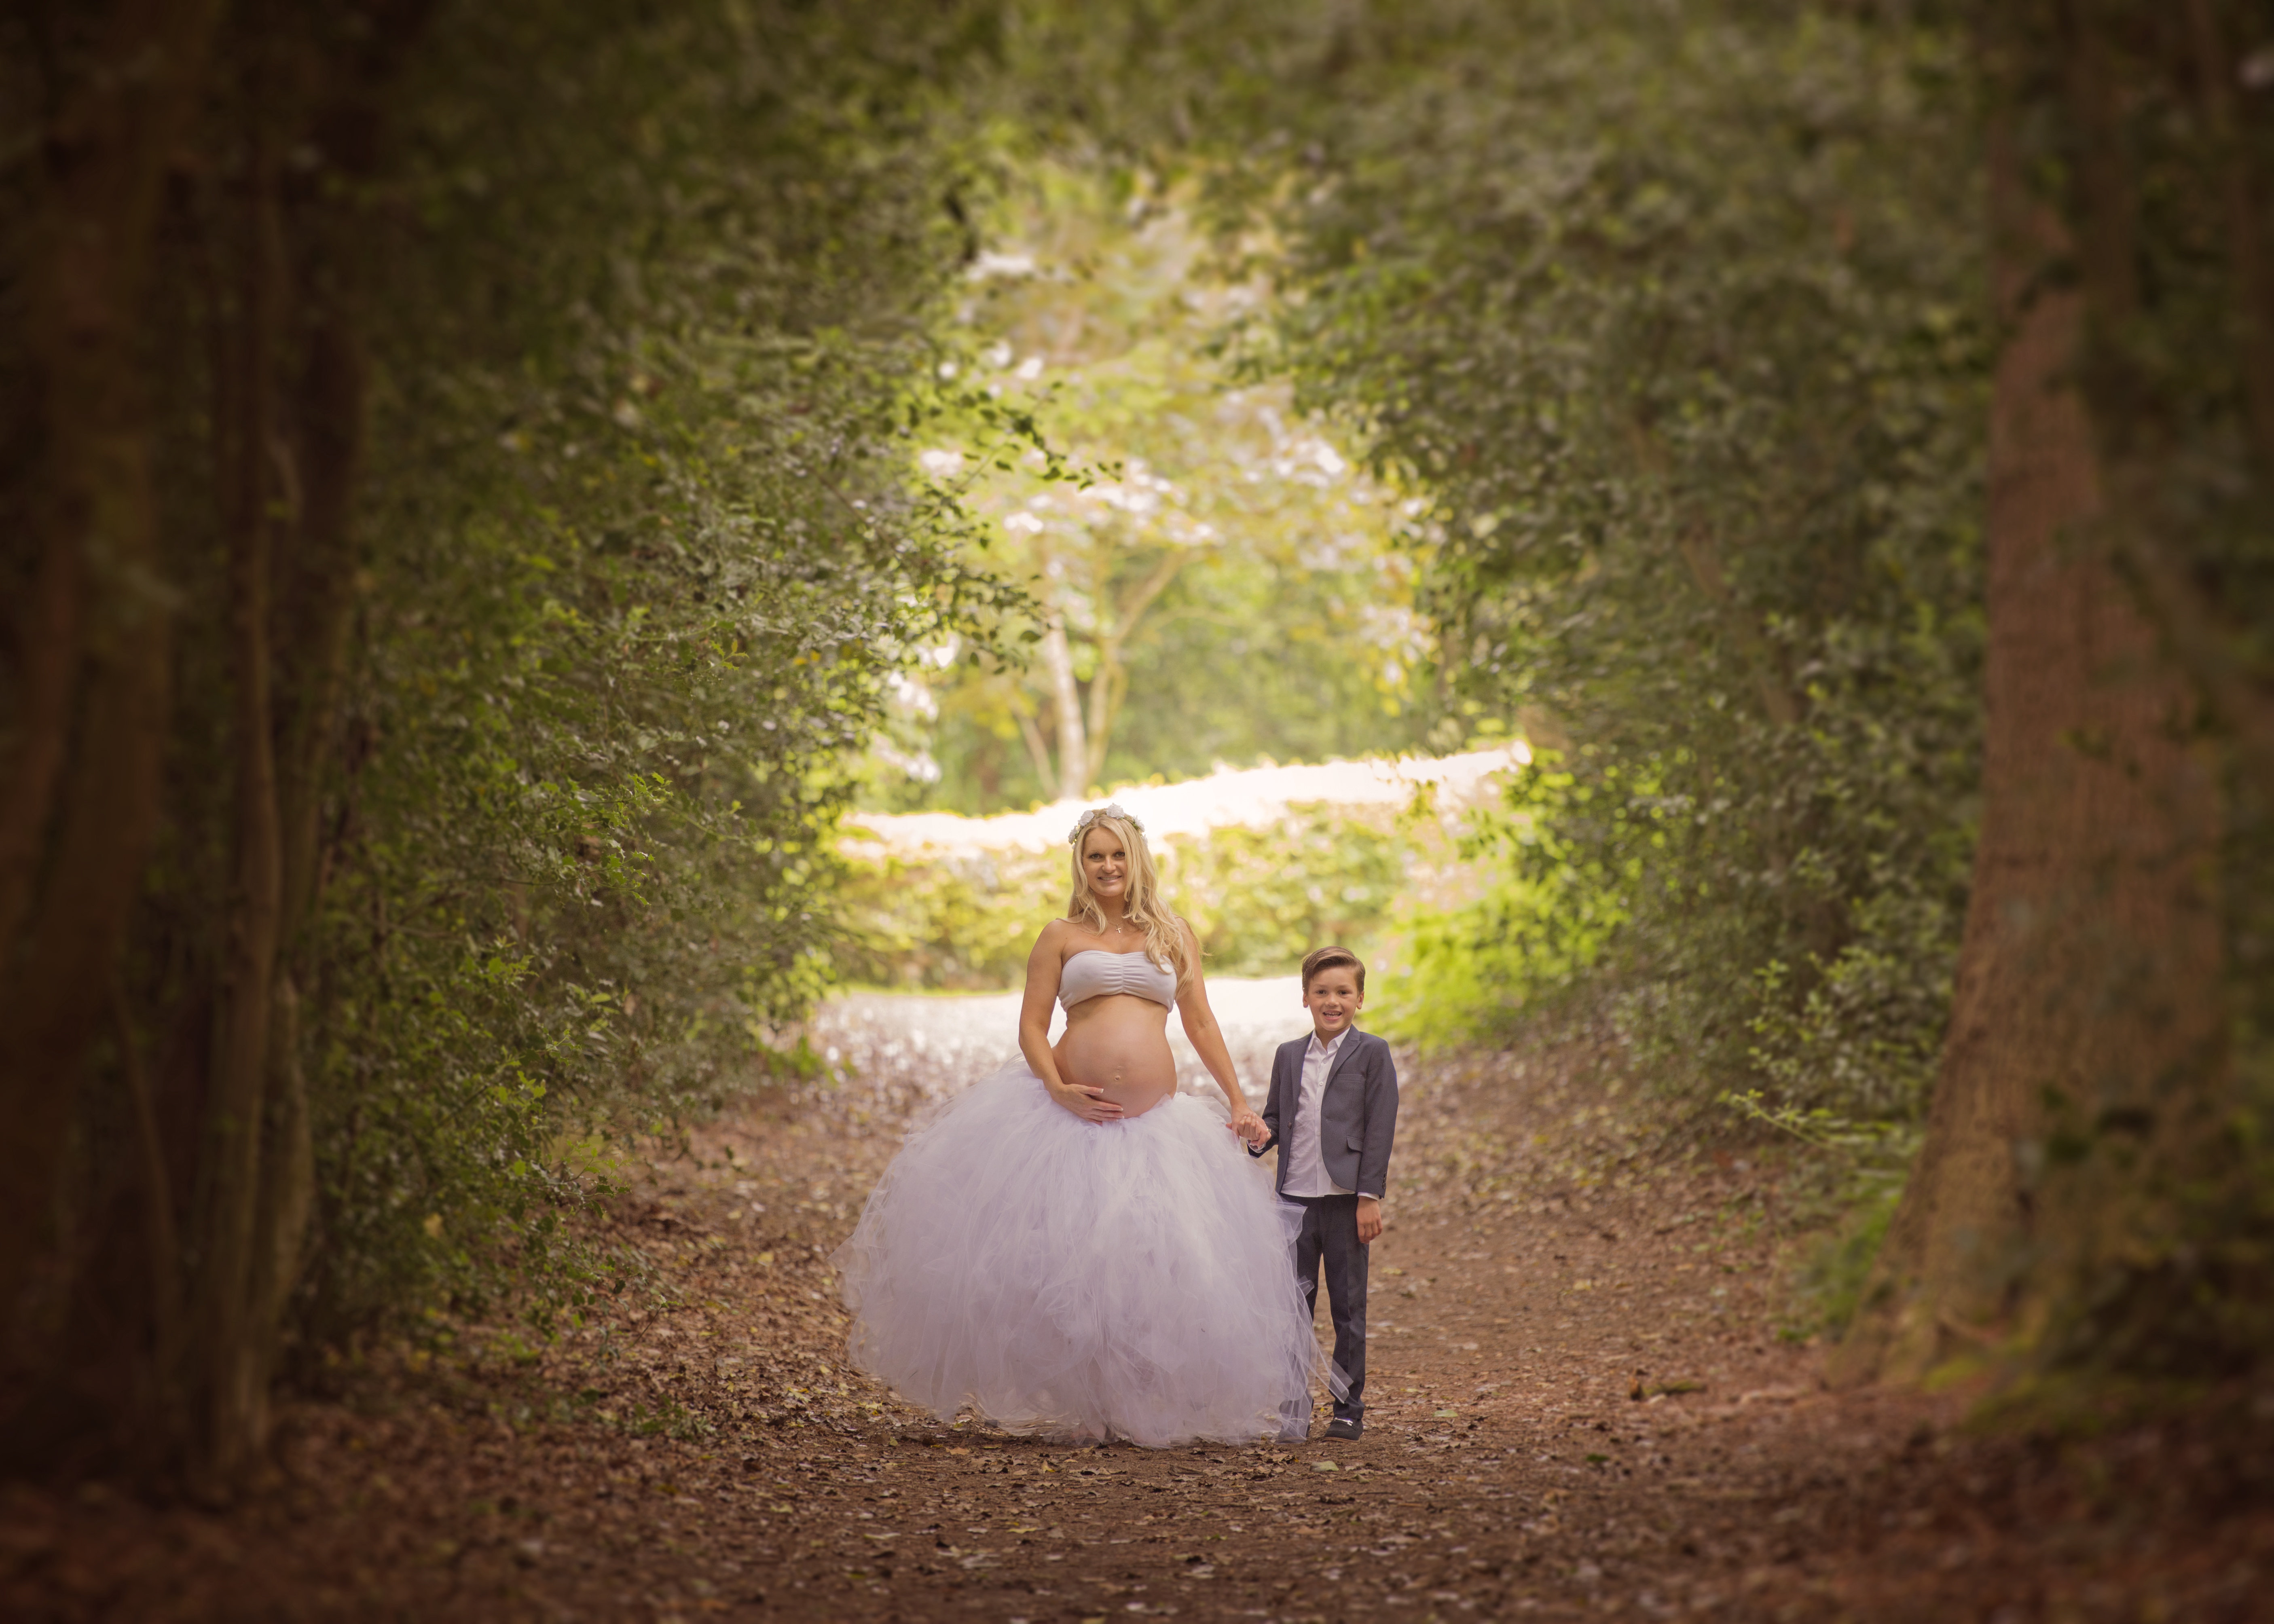 Maternity baby photography Essex